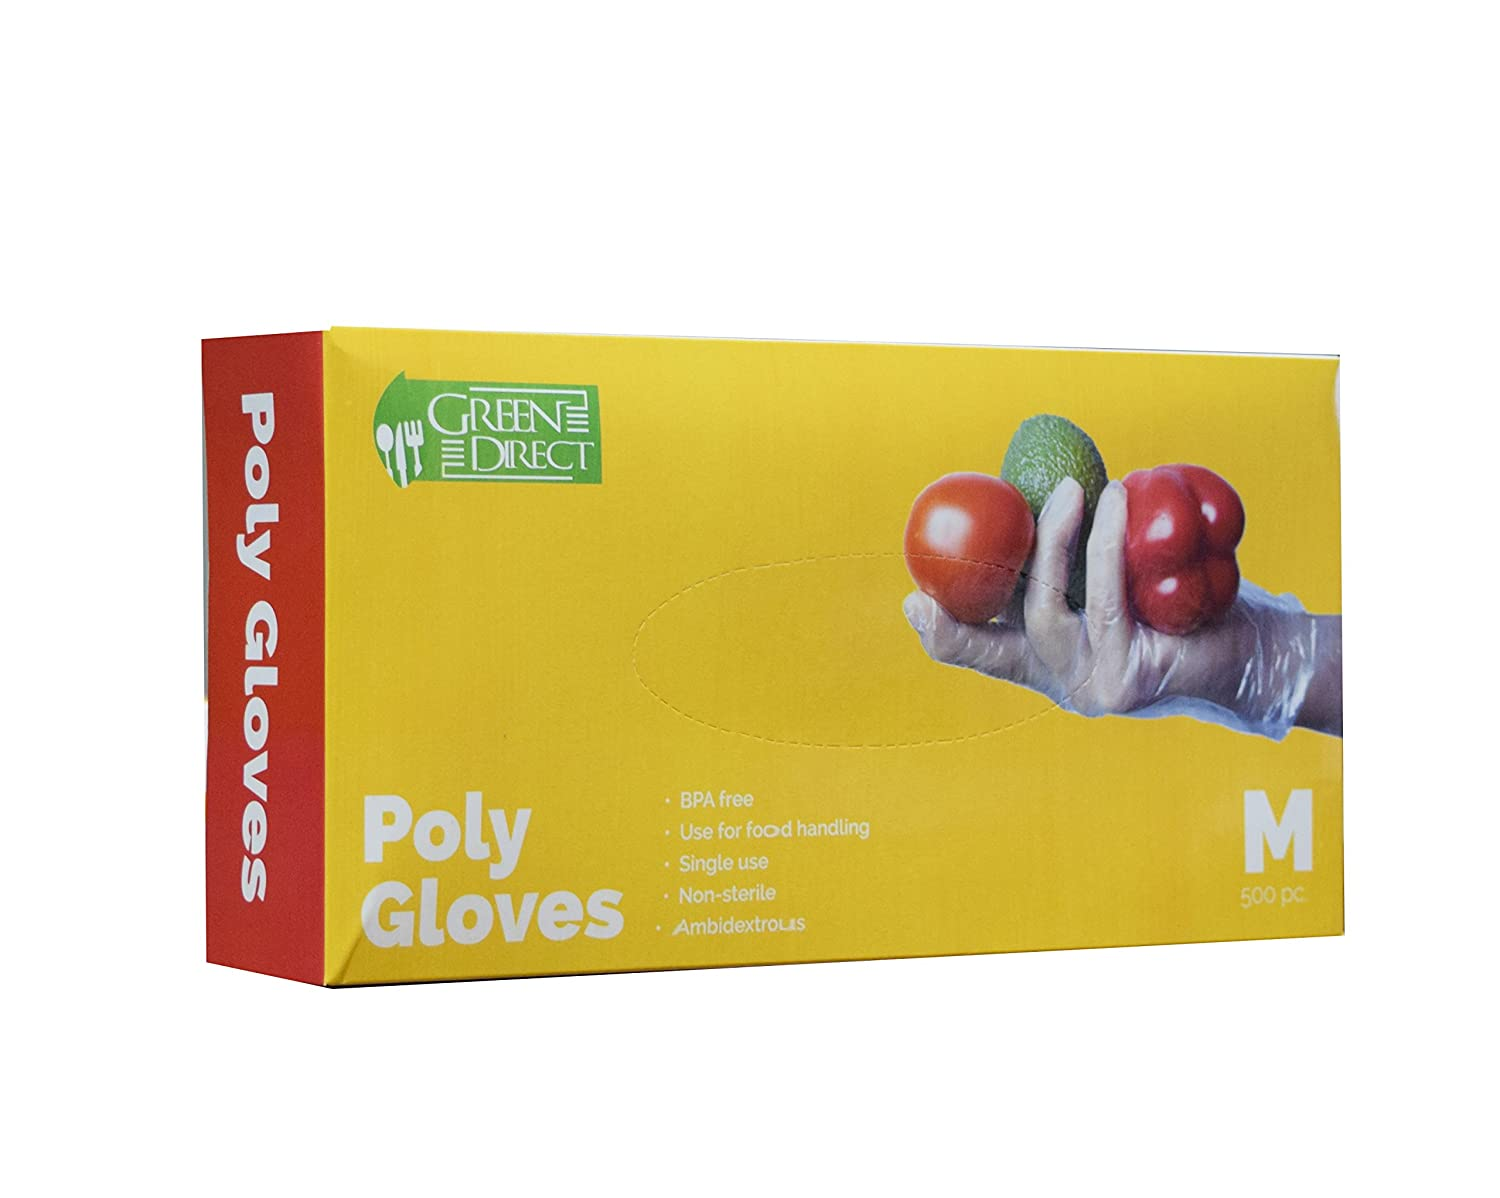 com green direct food grade pe disposable gloves food com green direct food grade pe disposable gloves food preparation poly gloves bpa box of 500 size large home improvement